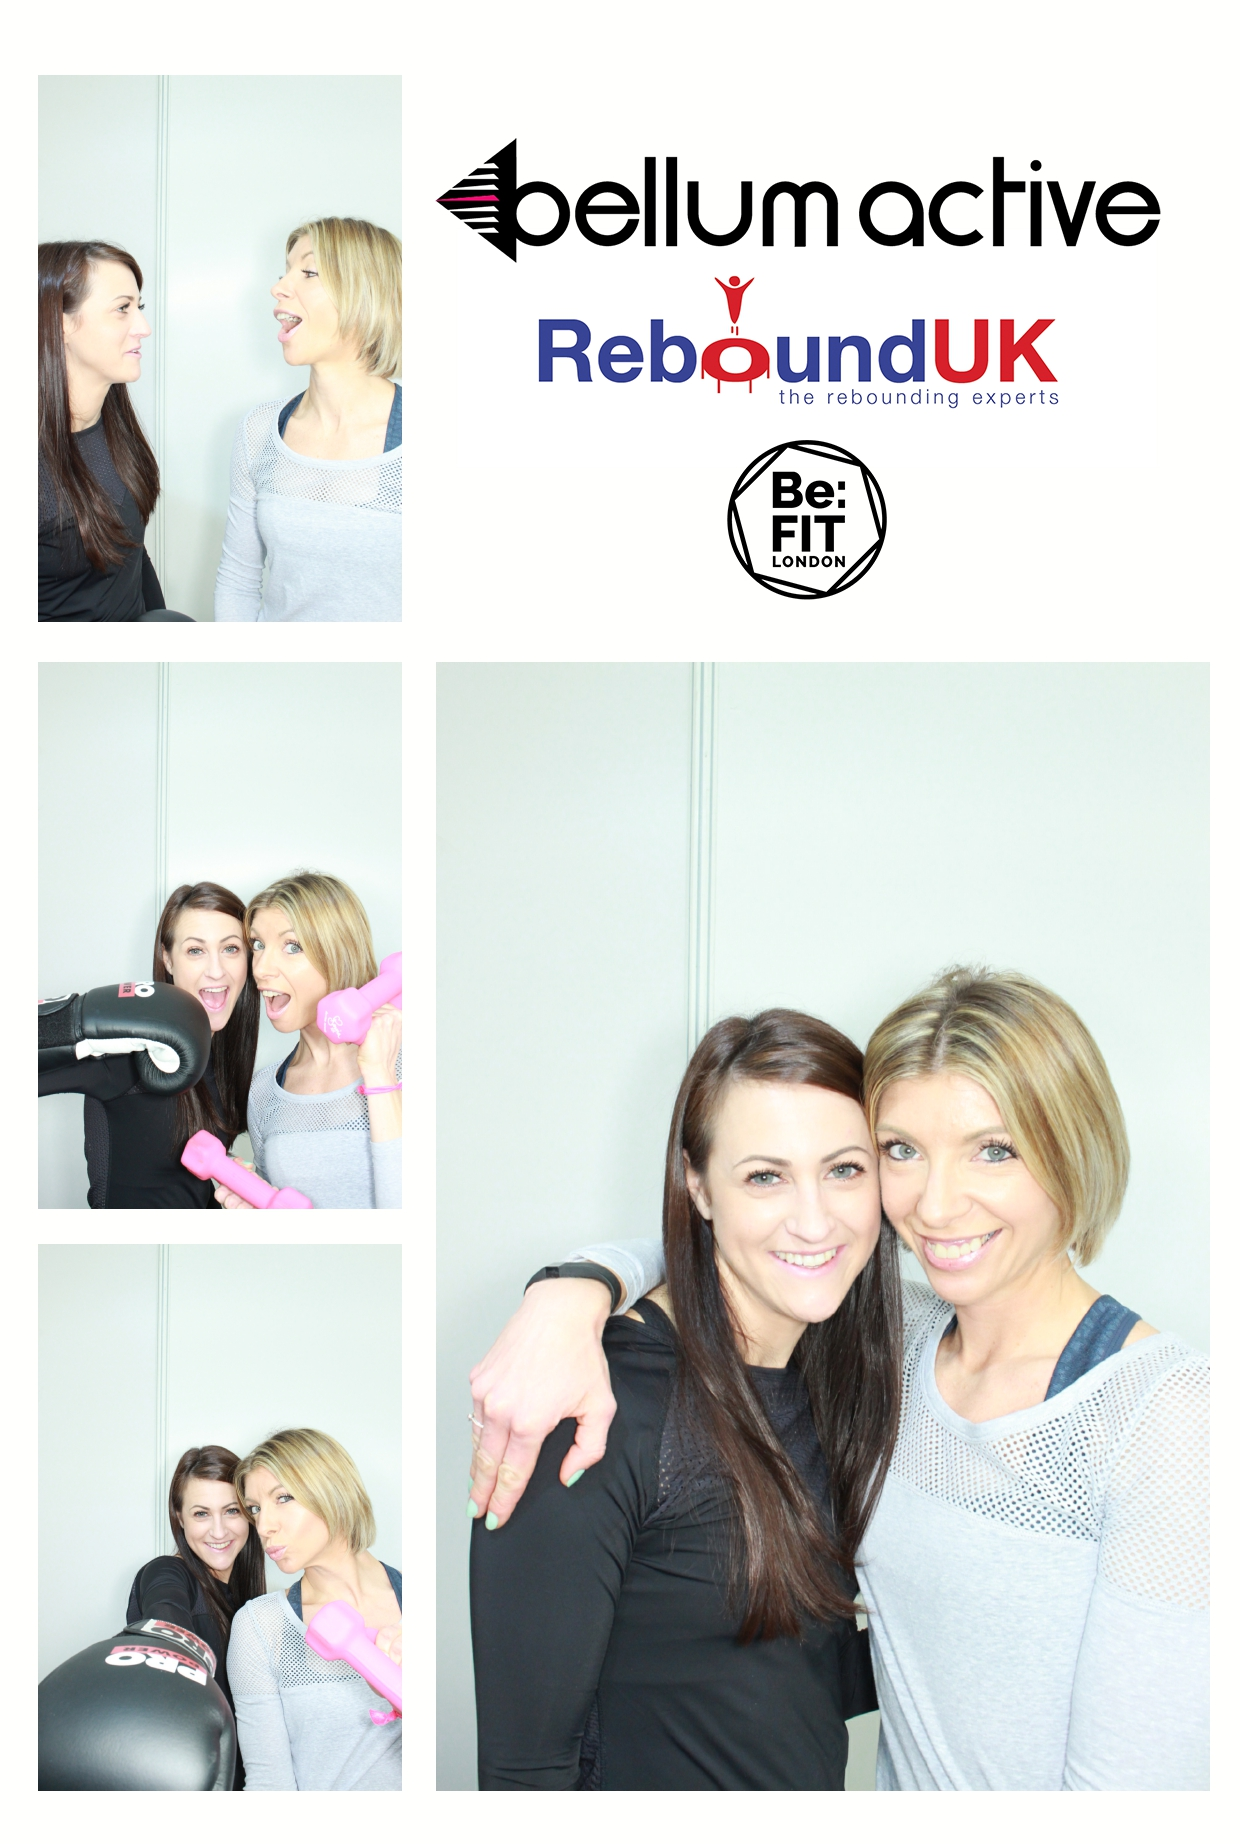 The London Lightbox Bellum Active Photo Booth